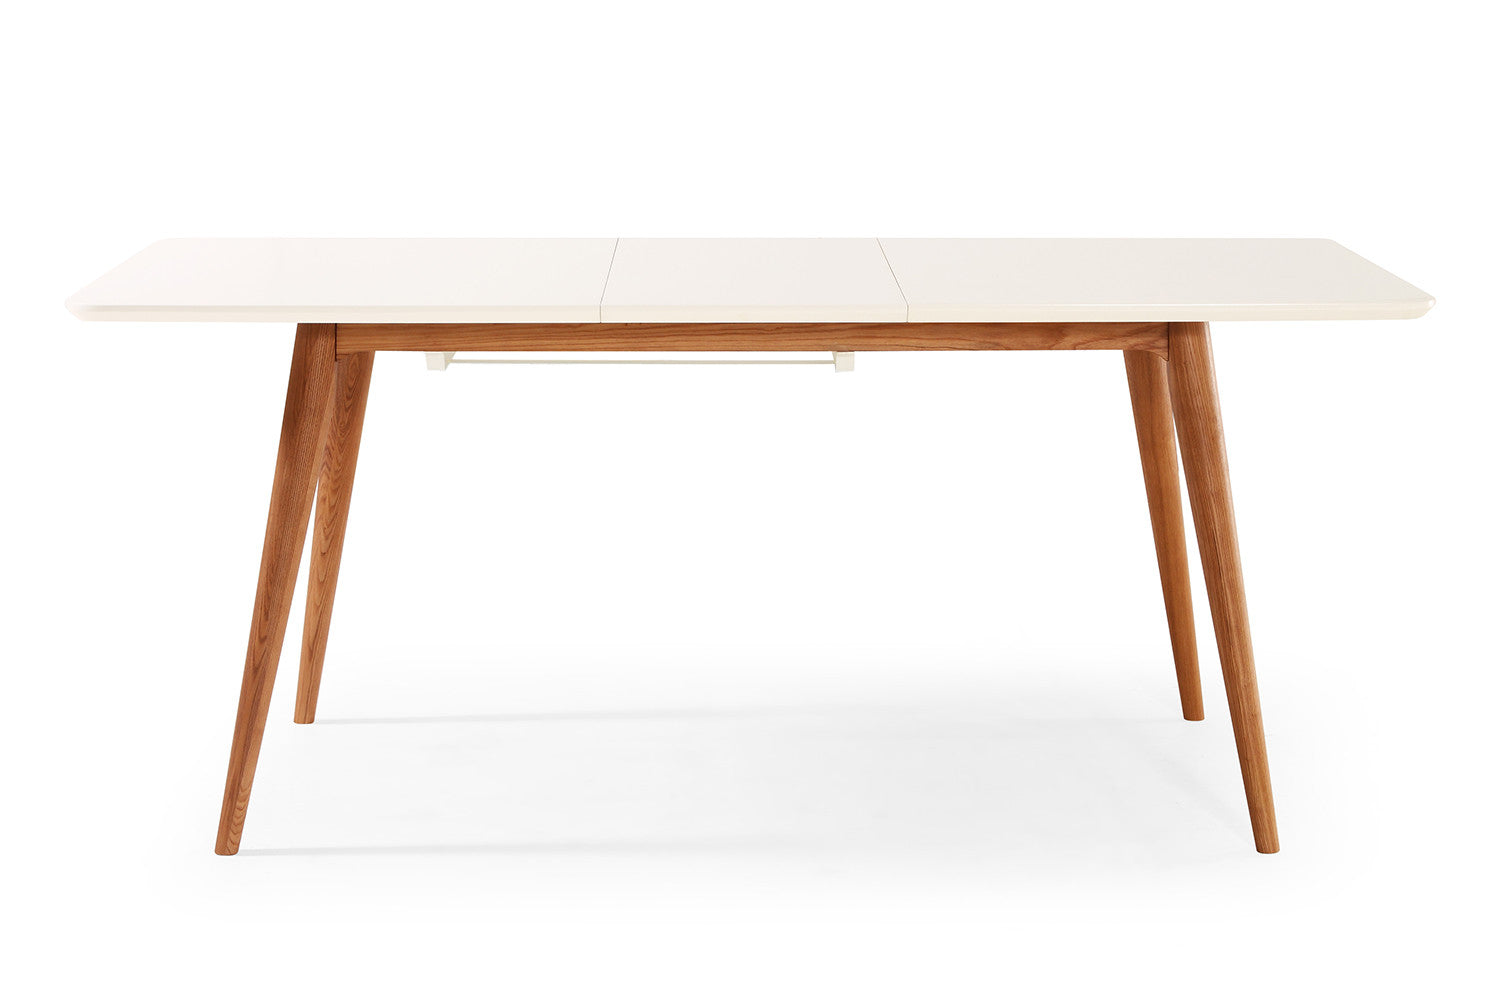 Table de salle manger extensible scandinave wyna dewarens for Table a manger a rallonge design